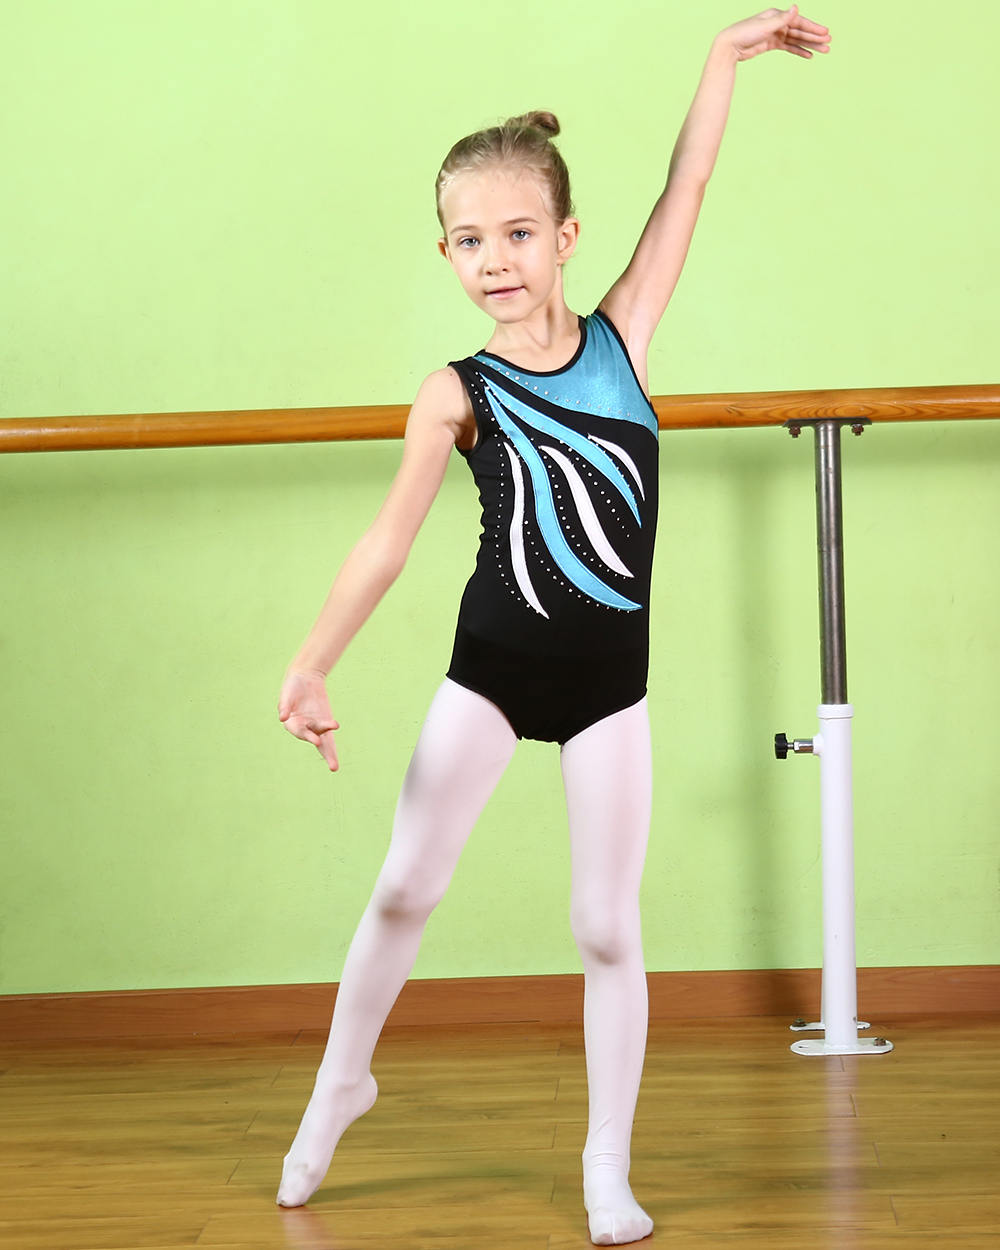 BAOHULU Sleeveless Girls Dress Ballet Leotards Dance Wear for Child 3-12Y Toddler&Teens Dance Leotard Kids Gymnastics Suits 2018 new girls ballet costumes sleeveless leotards dance dress ballet tutu gymnastics leotard acrobatics dancewear dress